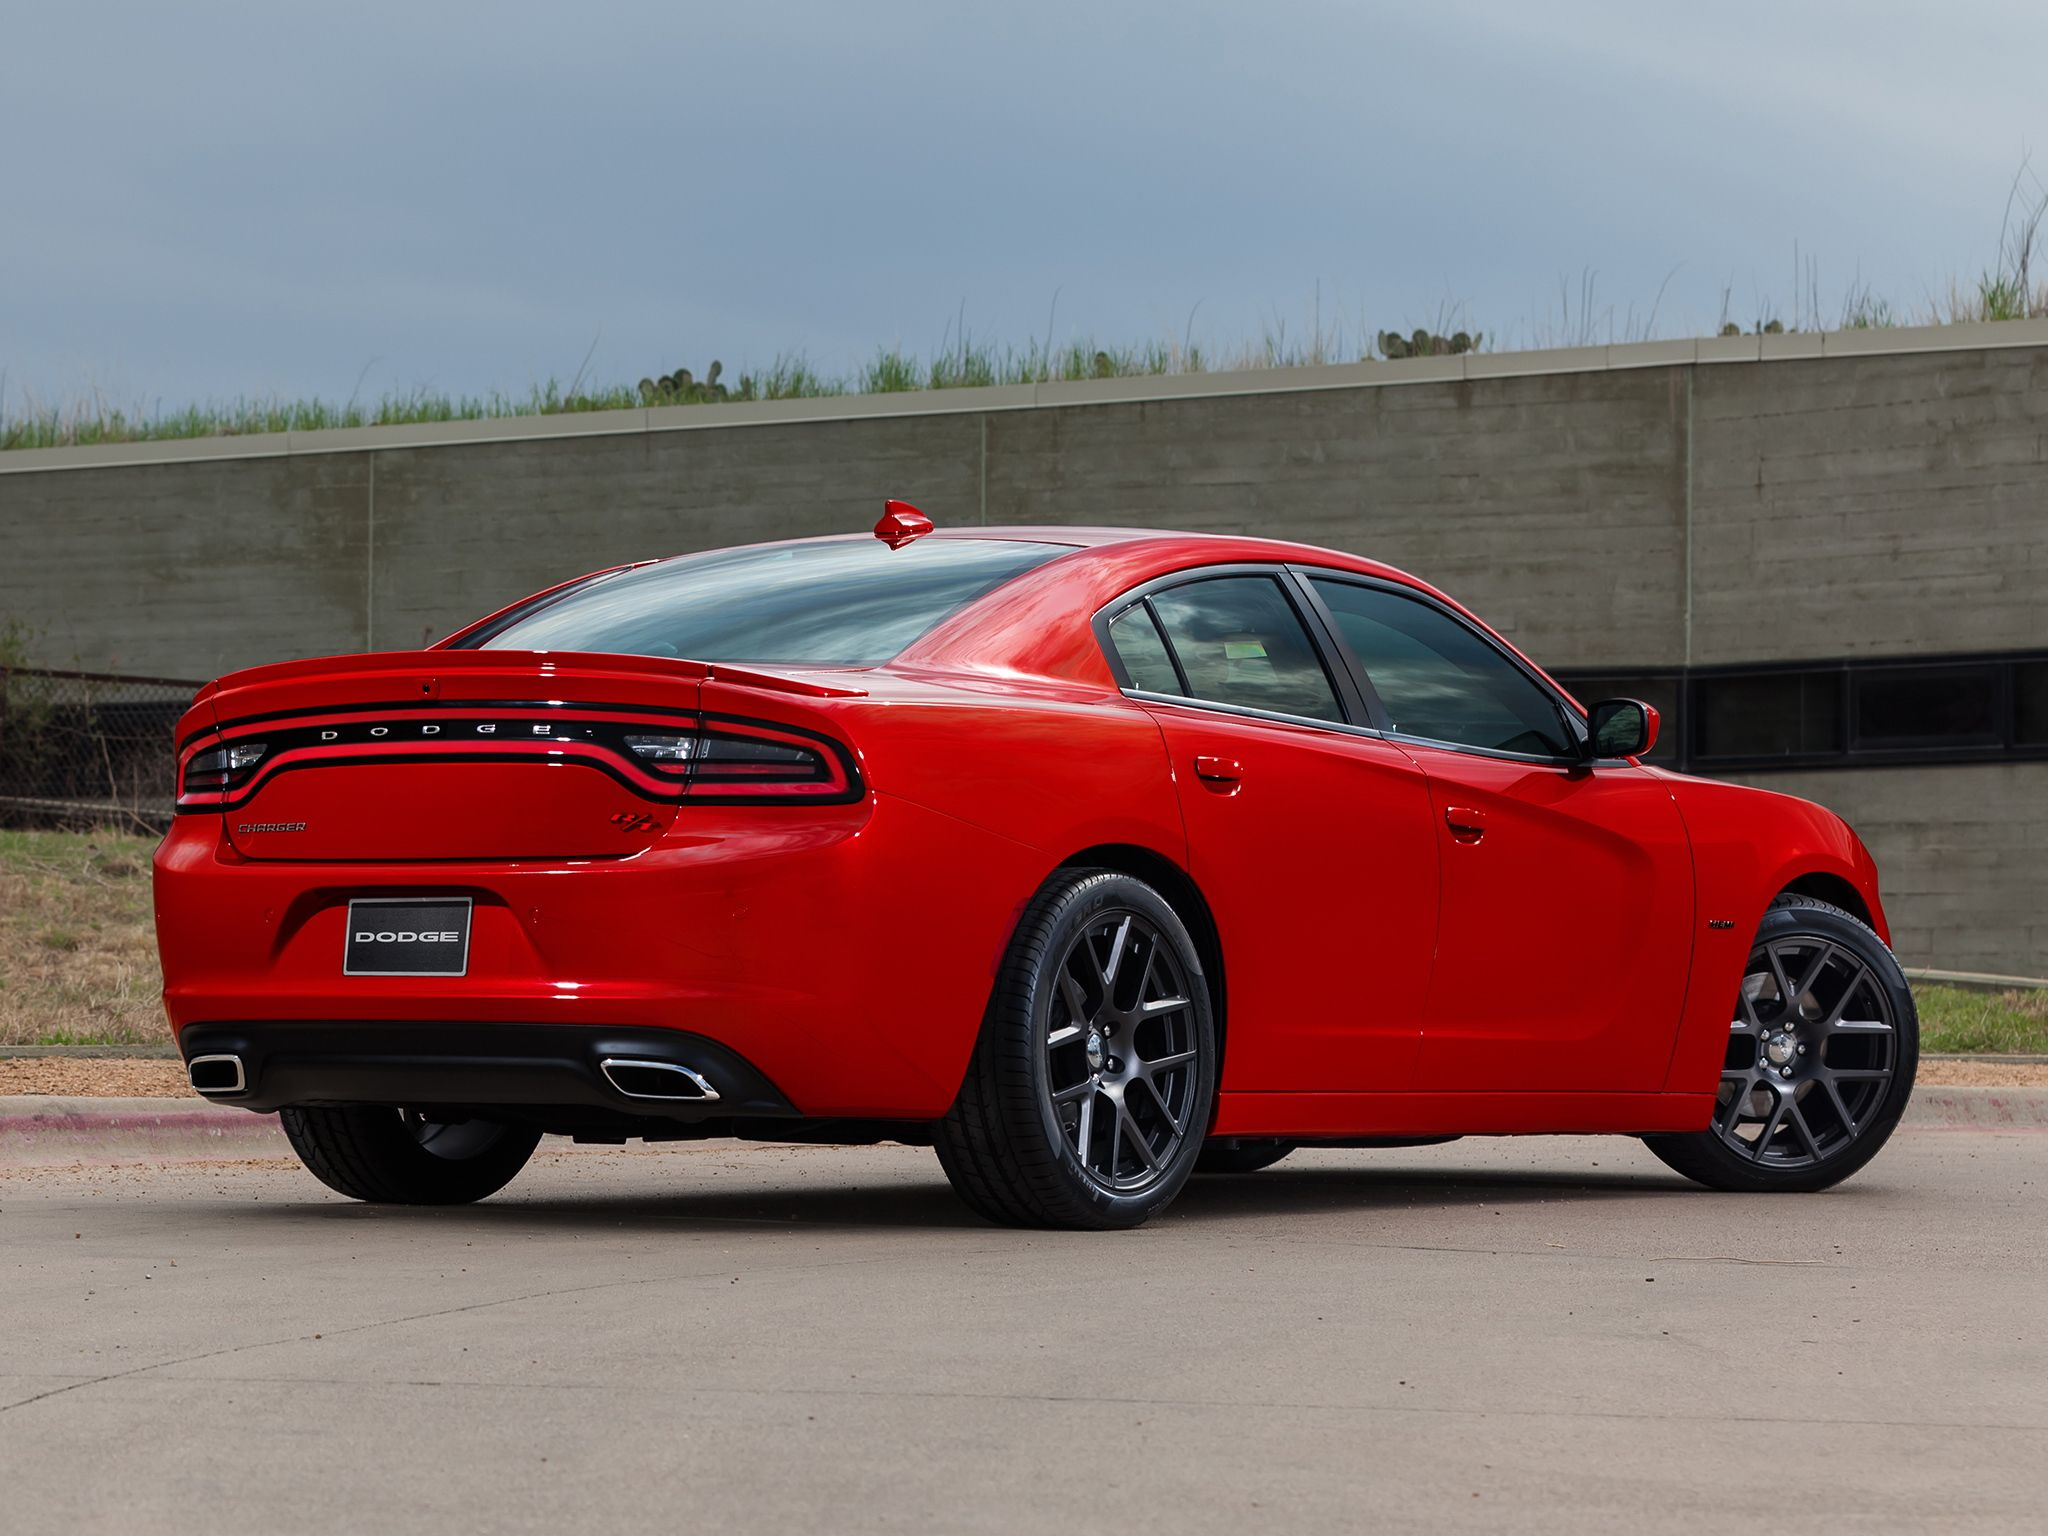 r dodge charger gallery t autotalk the review rt